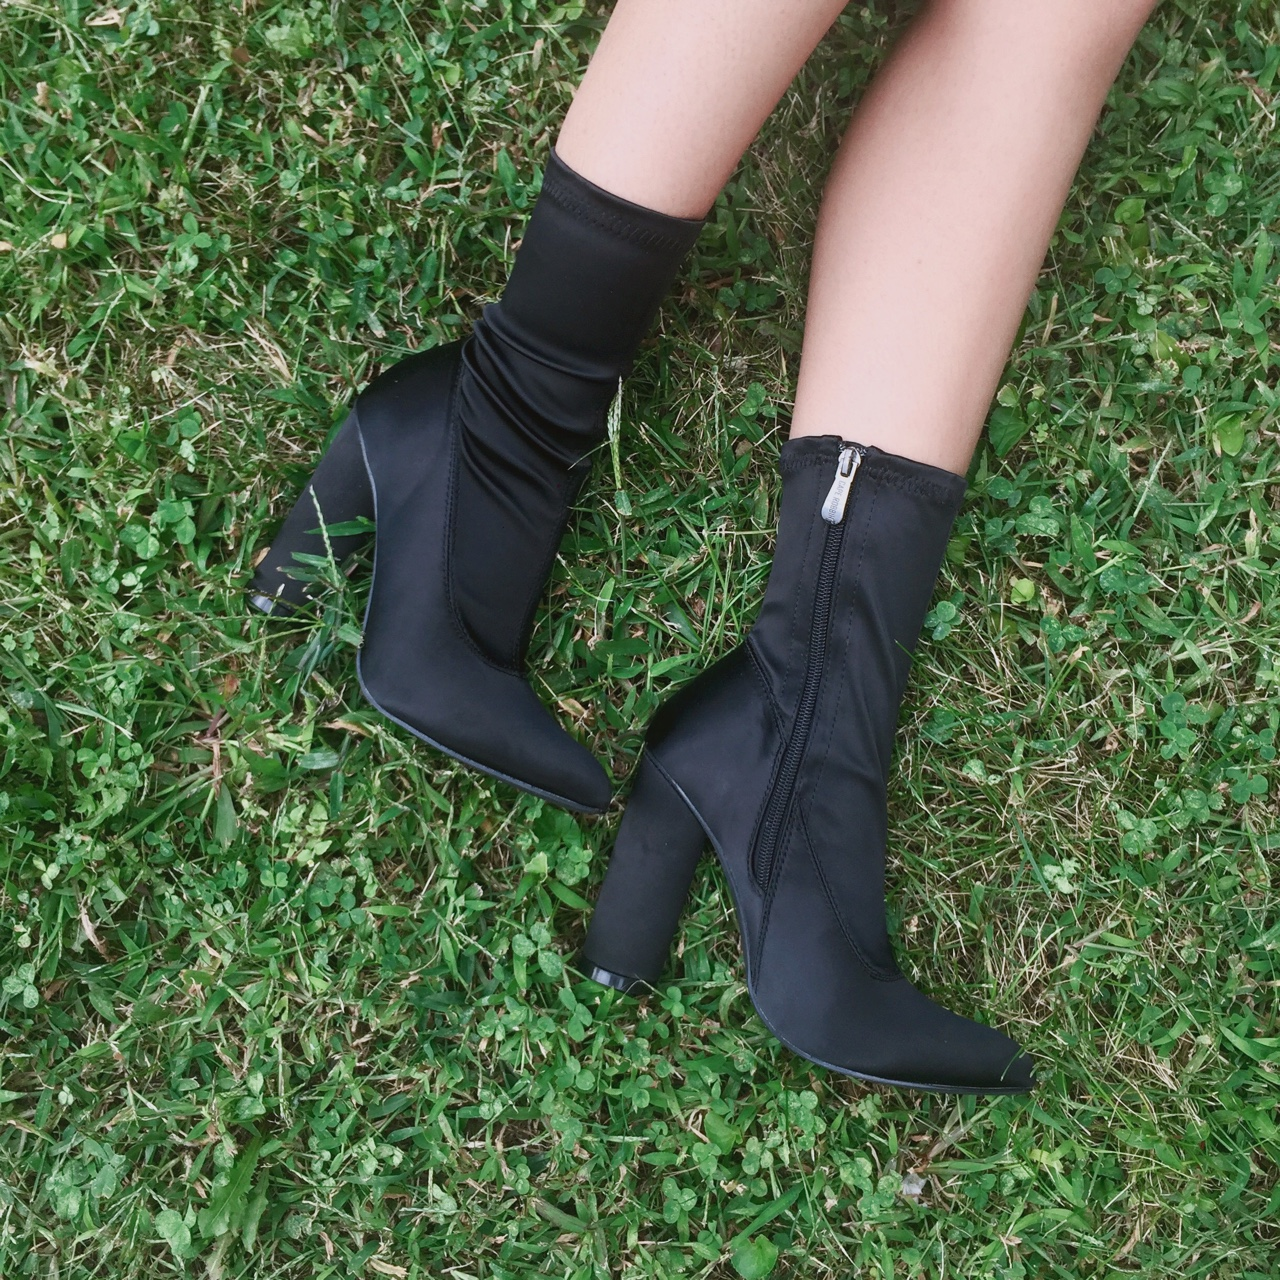 BLACK SATIN SOCK BOOTS (SIZE 6.5) from